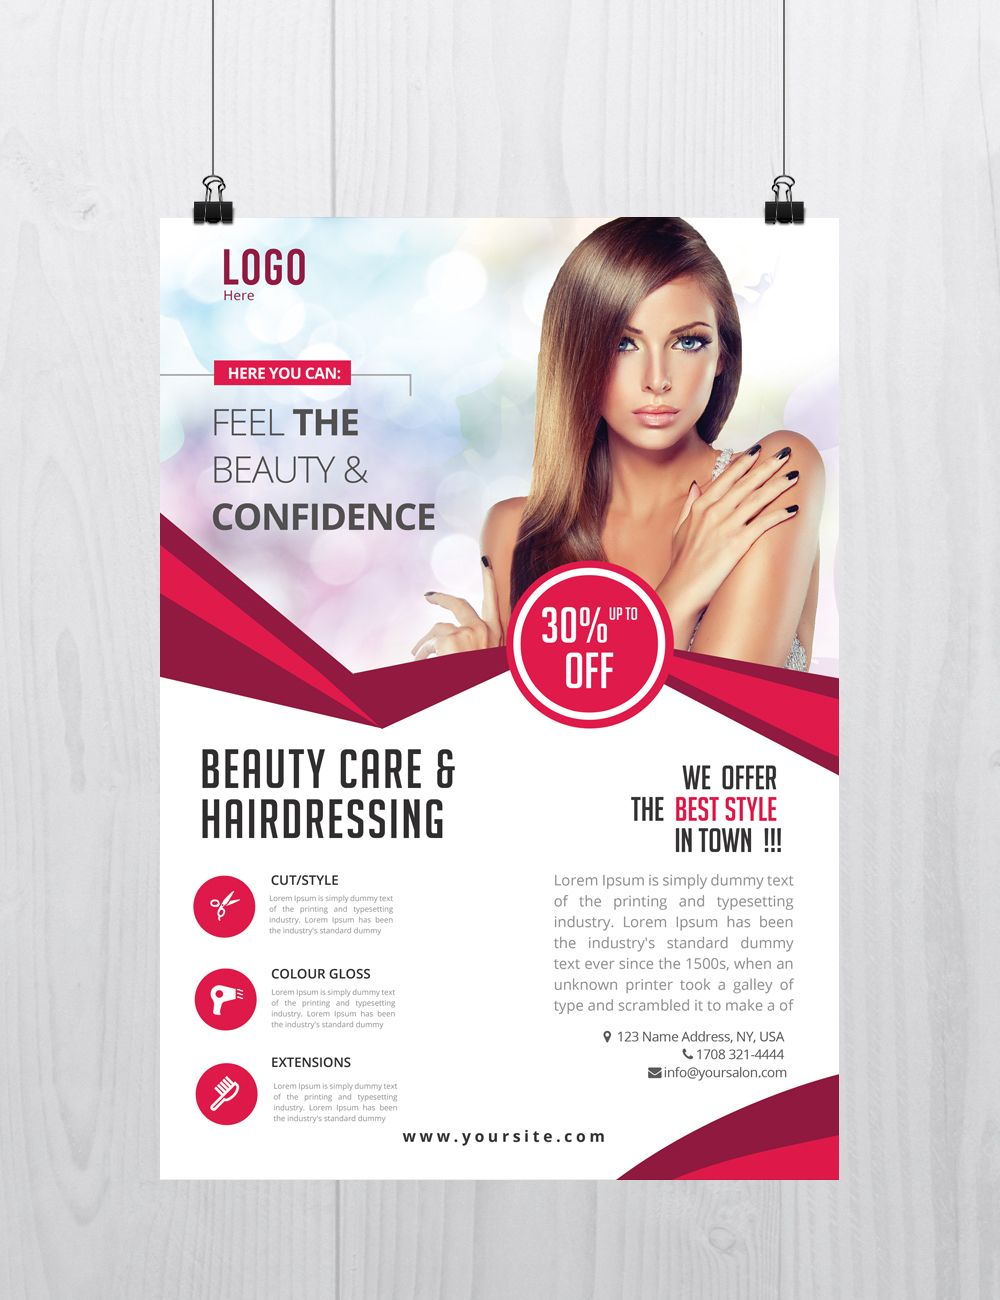 download beauty care psd flyer template for free. designed